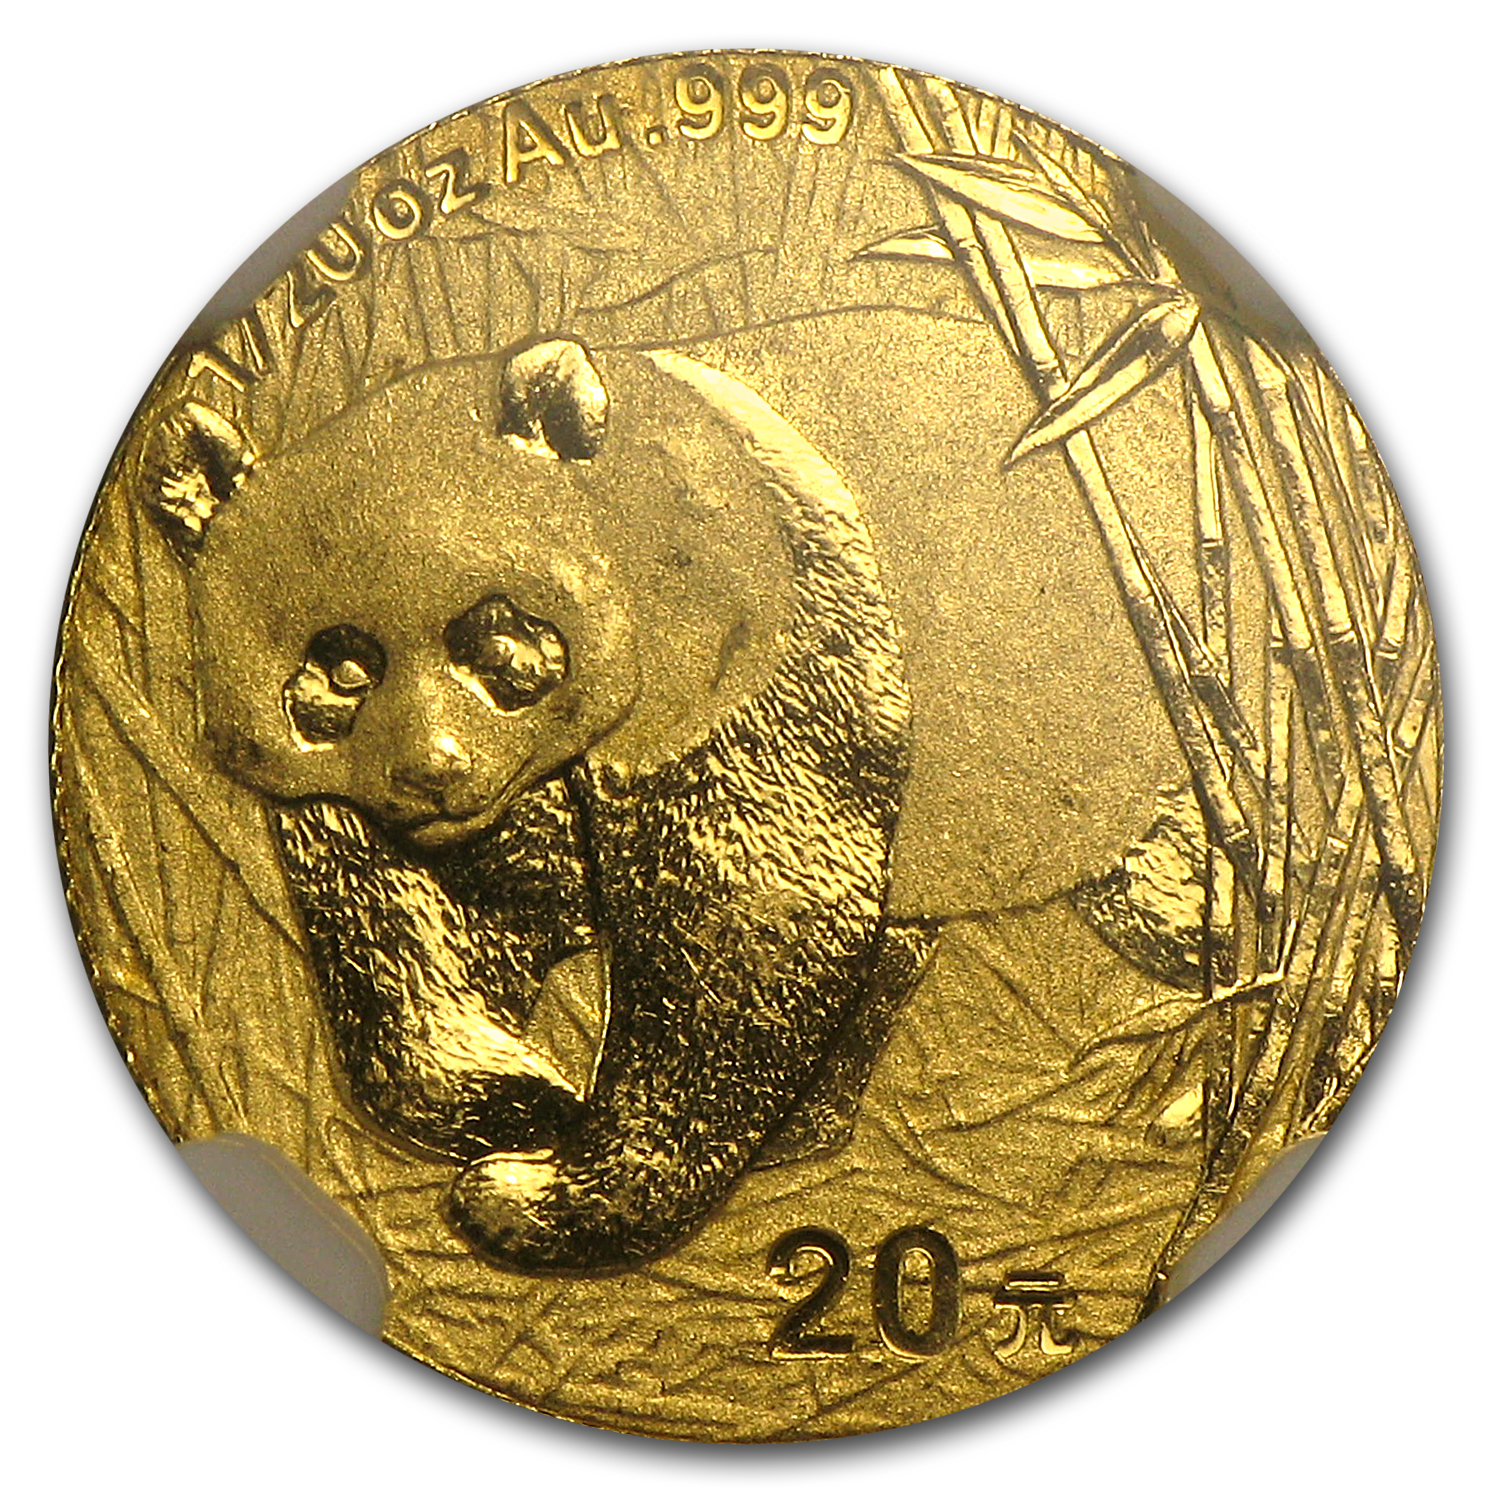 2001 (1/20 oz) Gold Chinese Pandas - MS-63 NGC